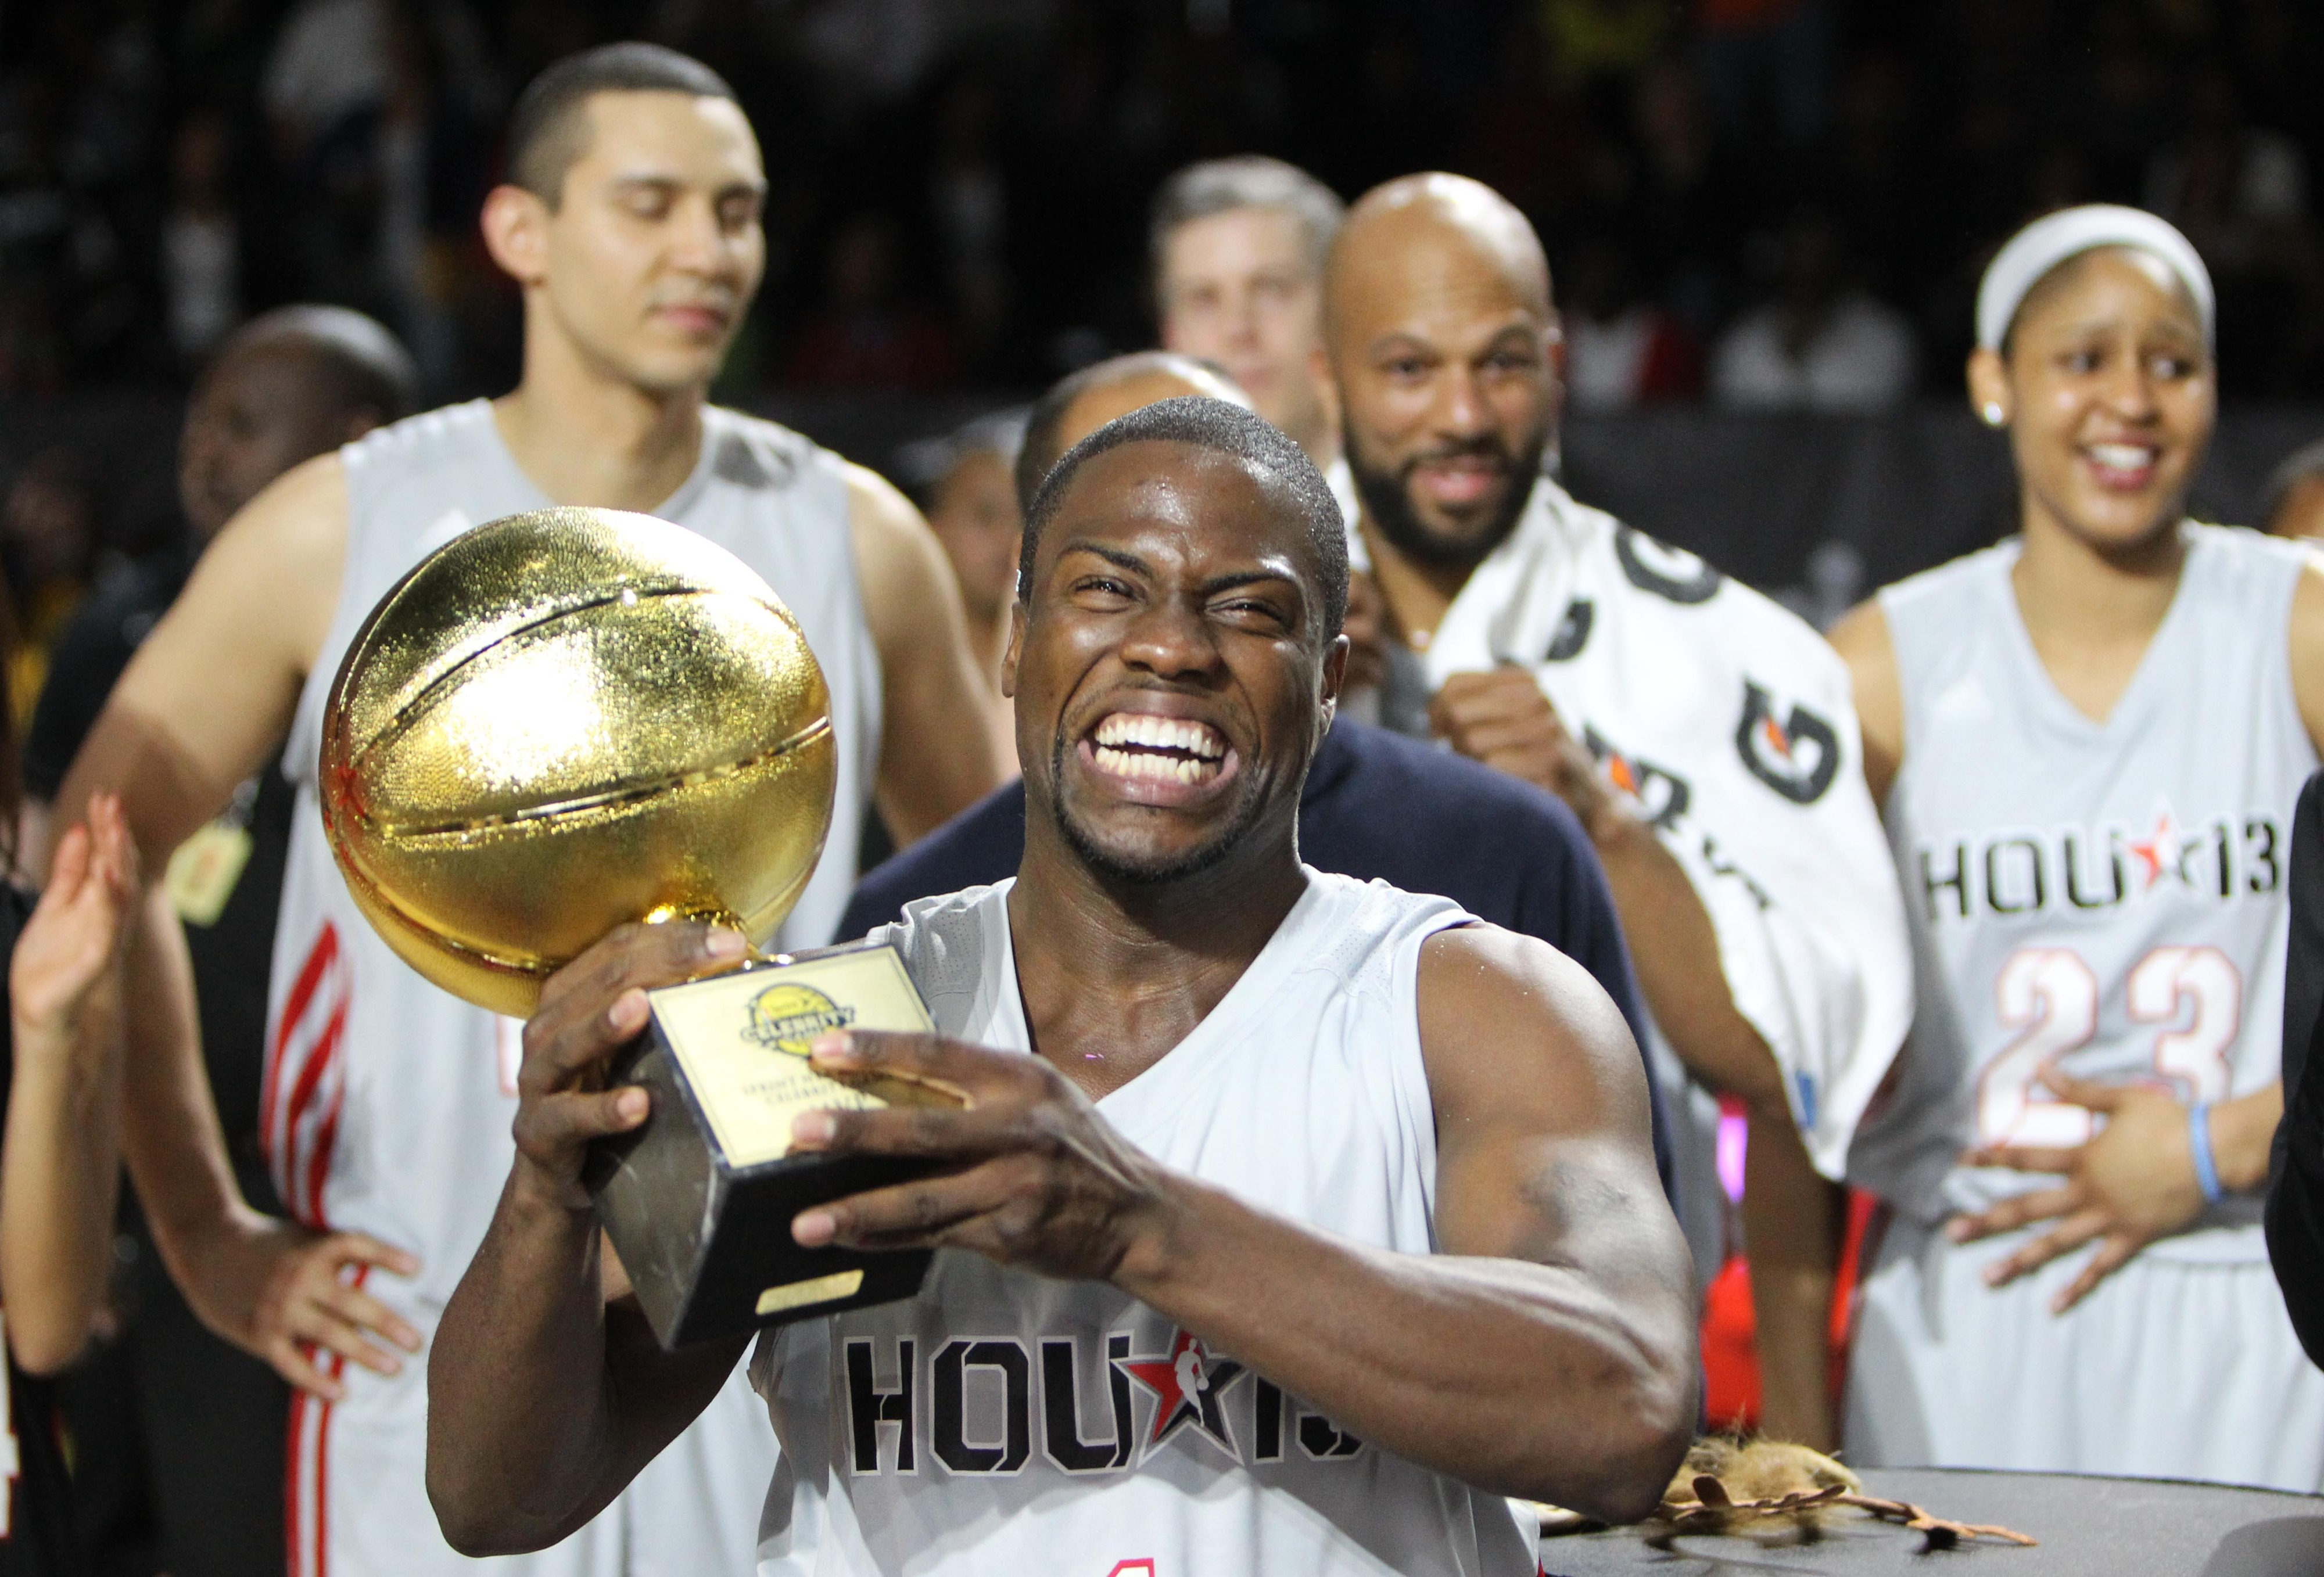 NBA All-Star Celebrity Game 2014: Kevin Hart goes for 3rd straight MVP